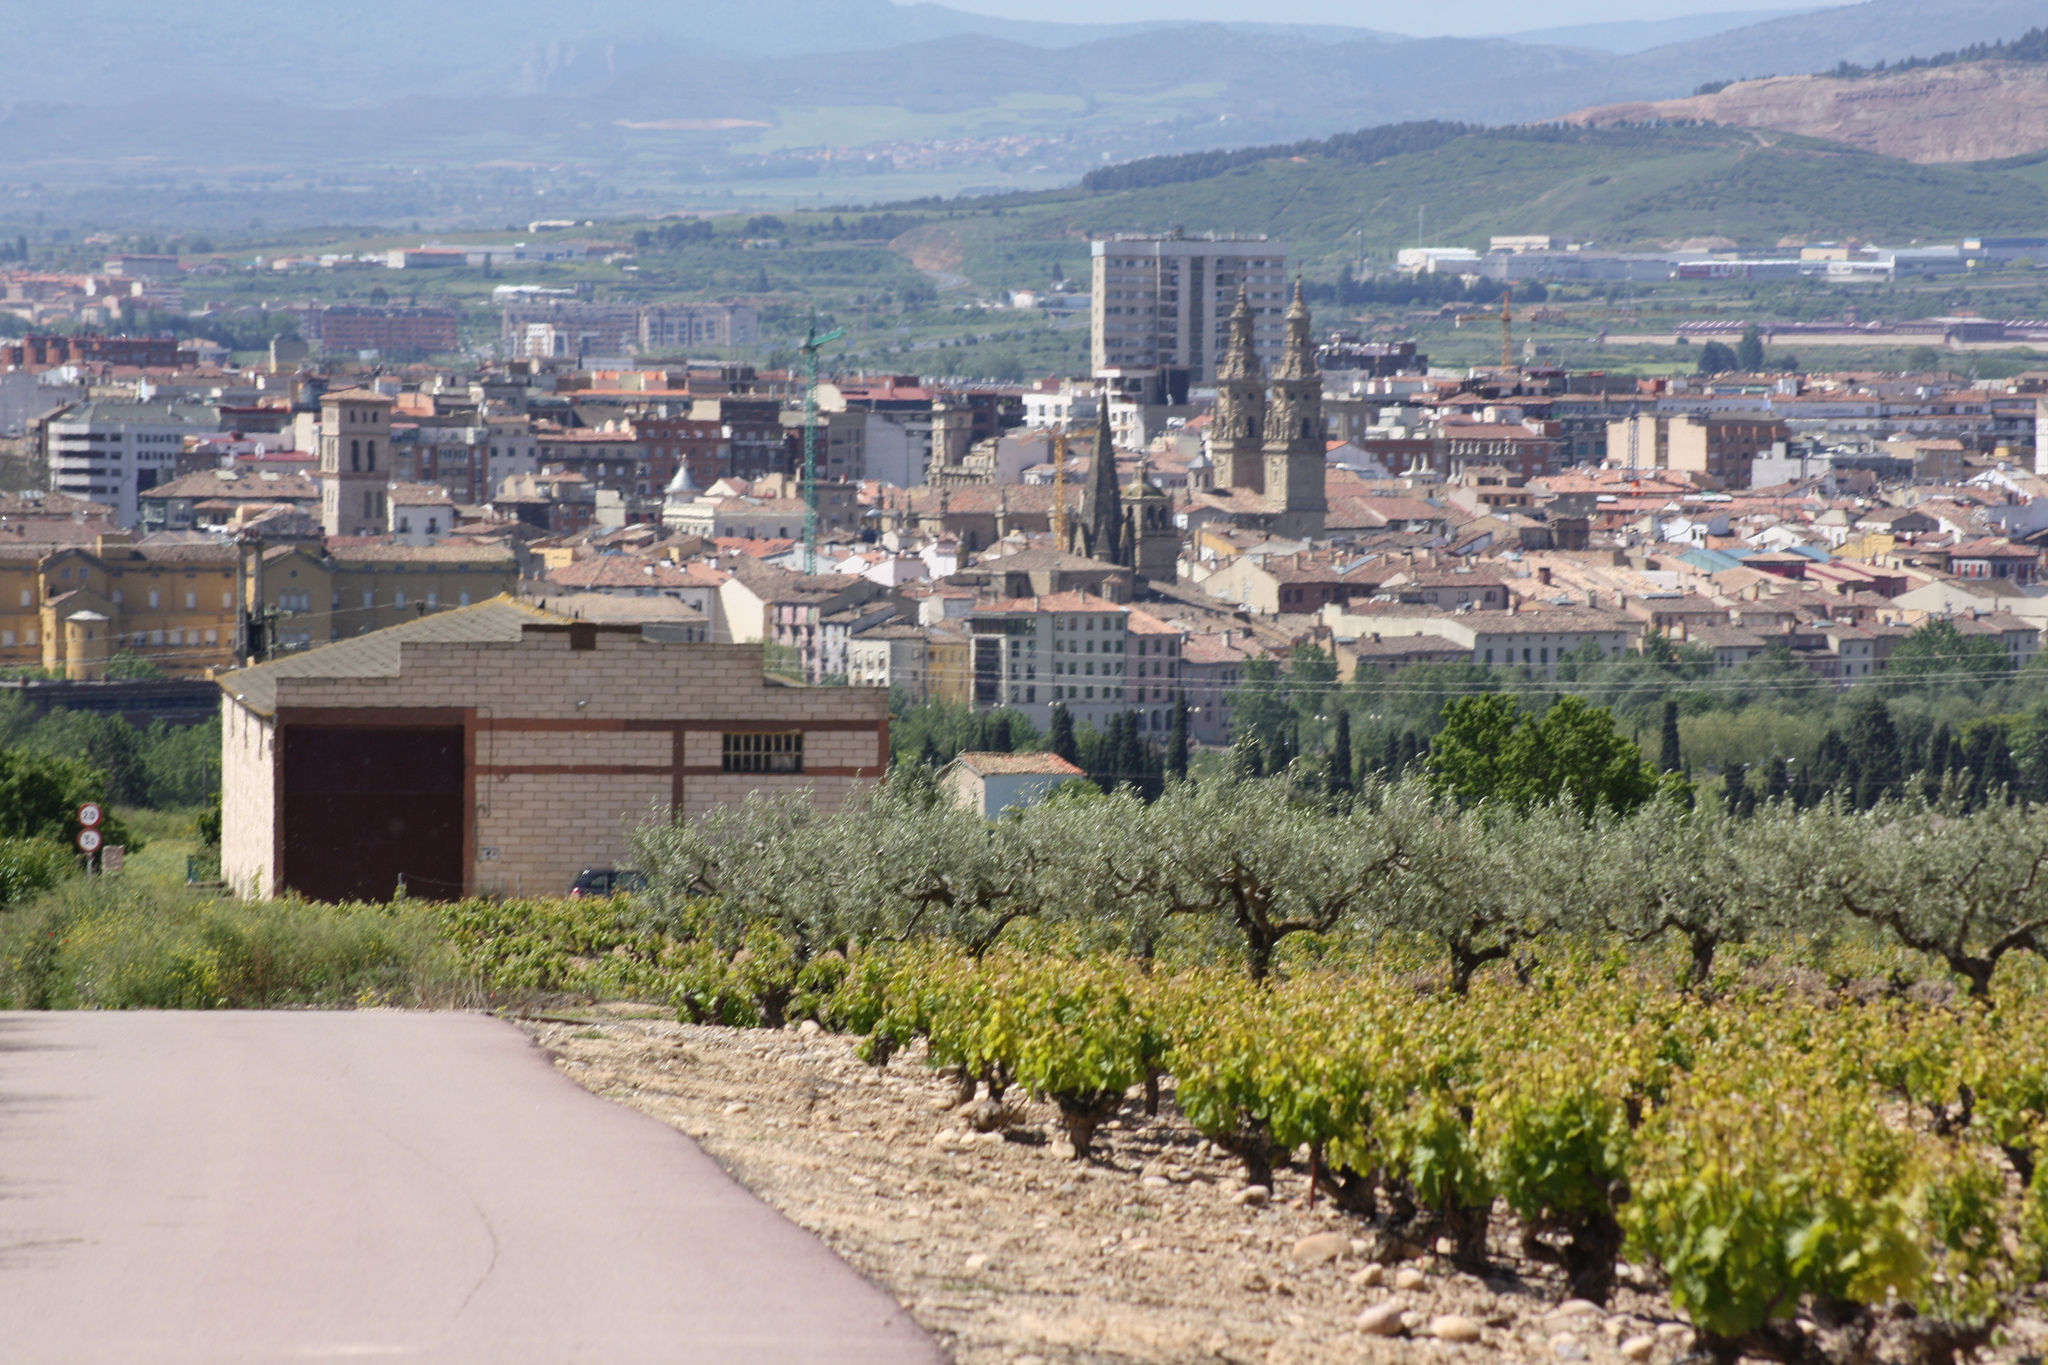 Road at the entrace to Logroño with the city in the background